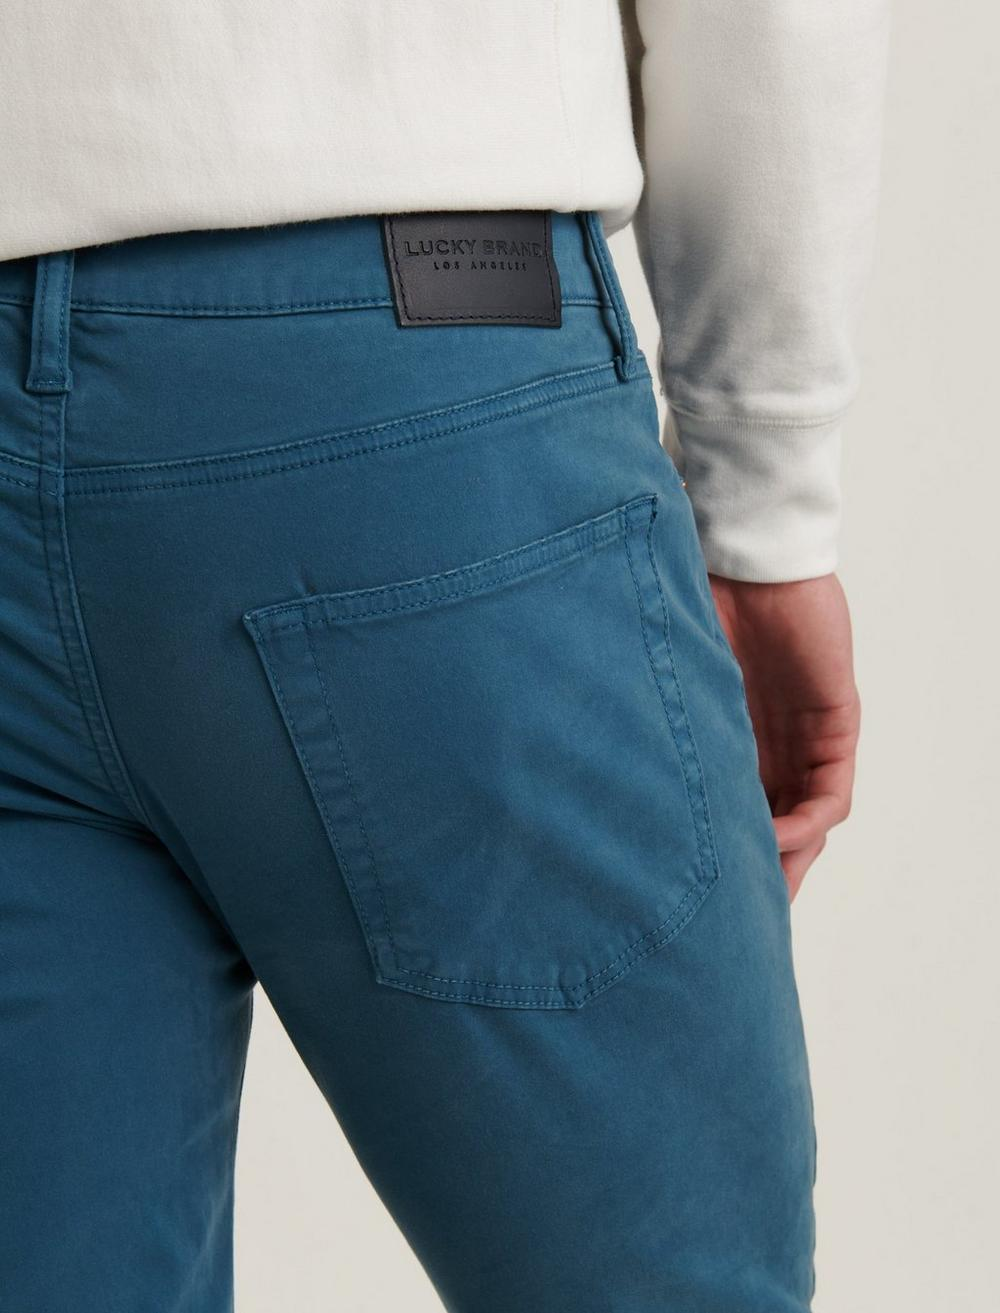 223 STRAIGHT SATEEN STRETCH JEAN, image 6